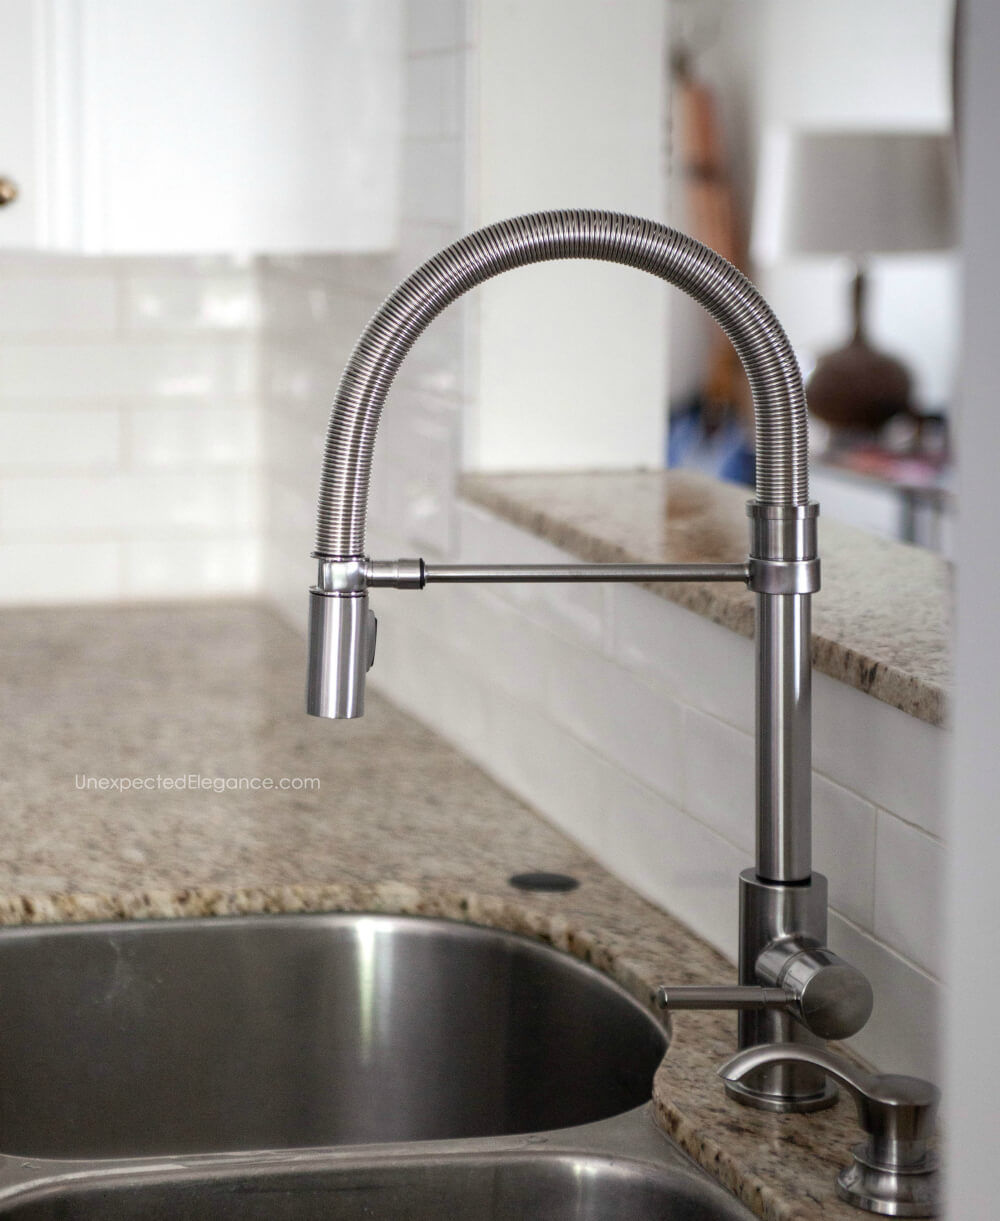 New Kitchen Faucets |ORC PROGRESS | Unexpected Elegance